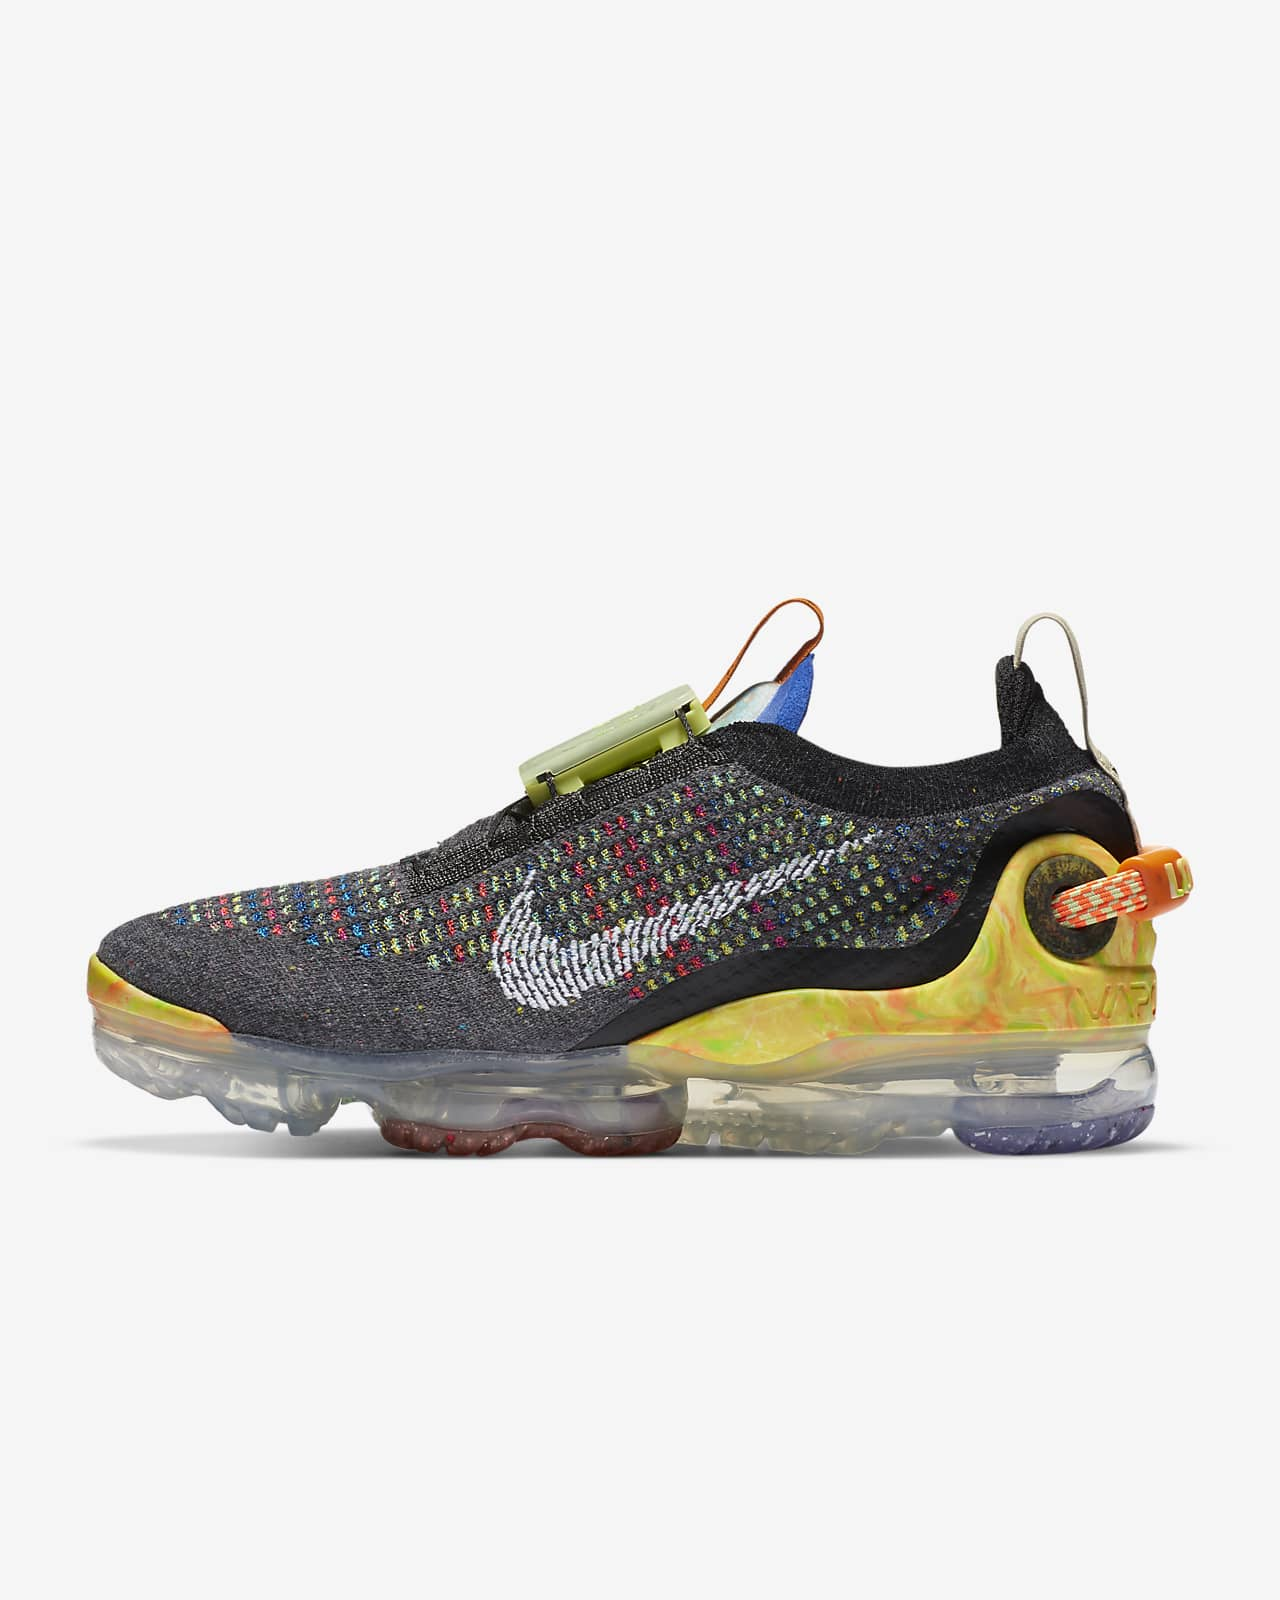 Best Nike Vapor Shoes Price List in Philippines May 2020